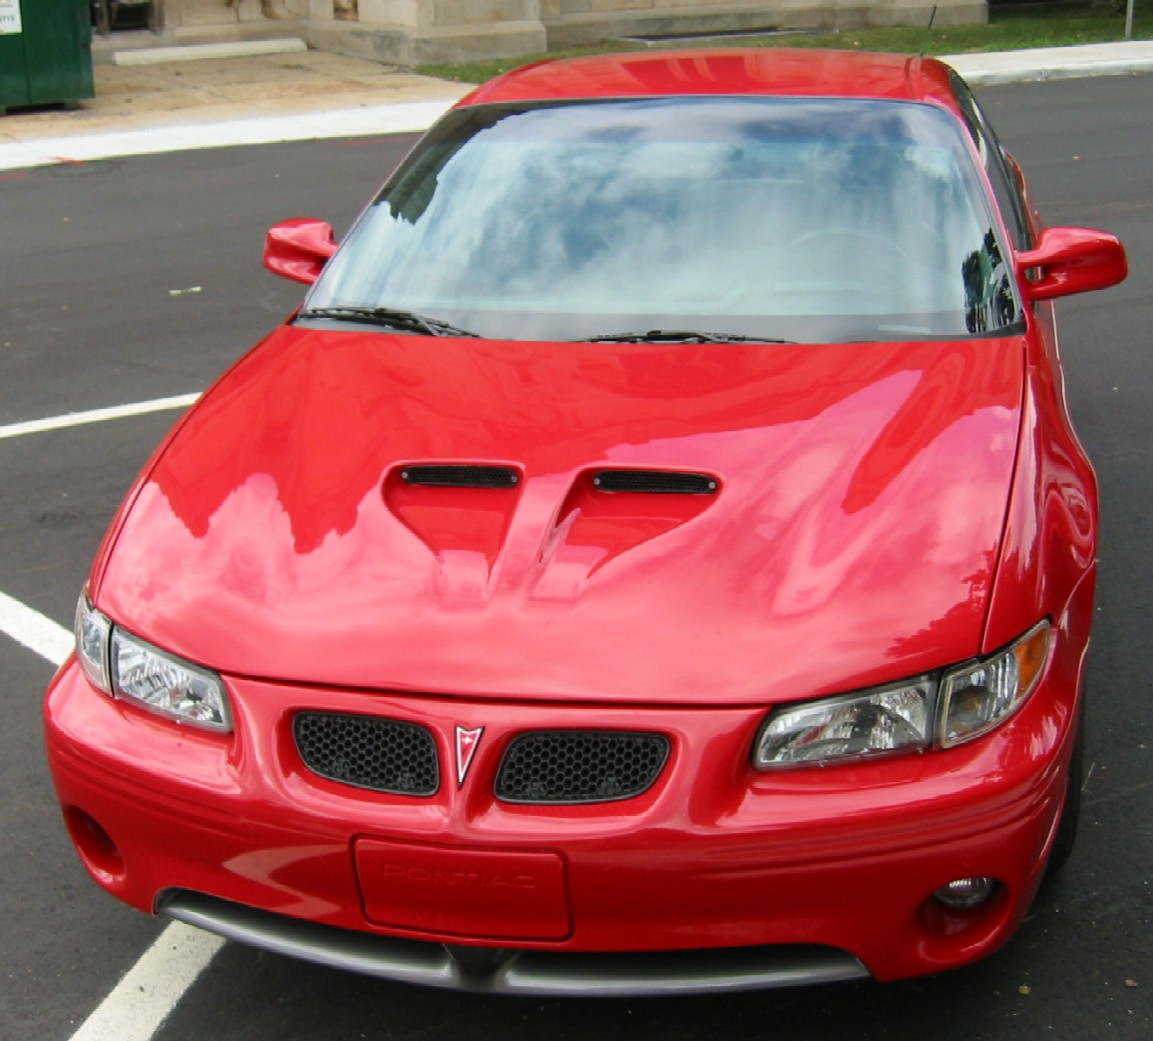 2001 Pontiac Grand Prix GTX Ram Air 4 Dr.